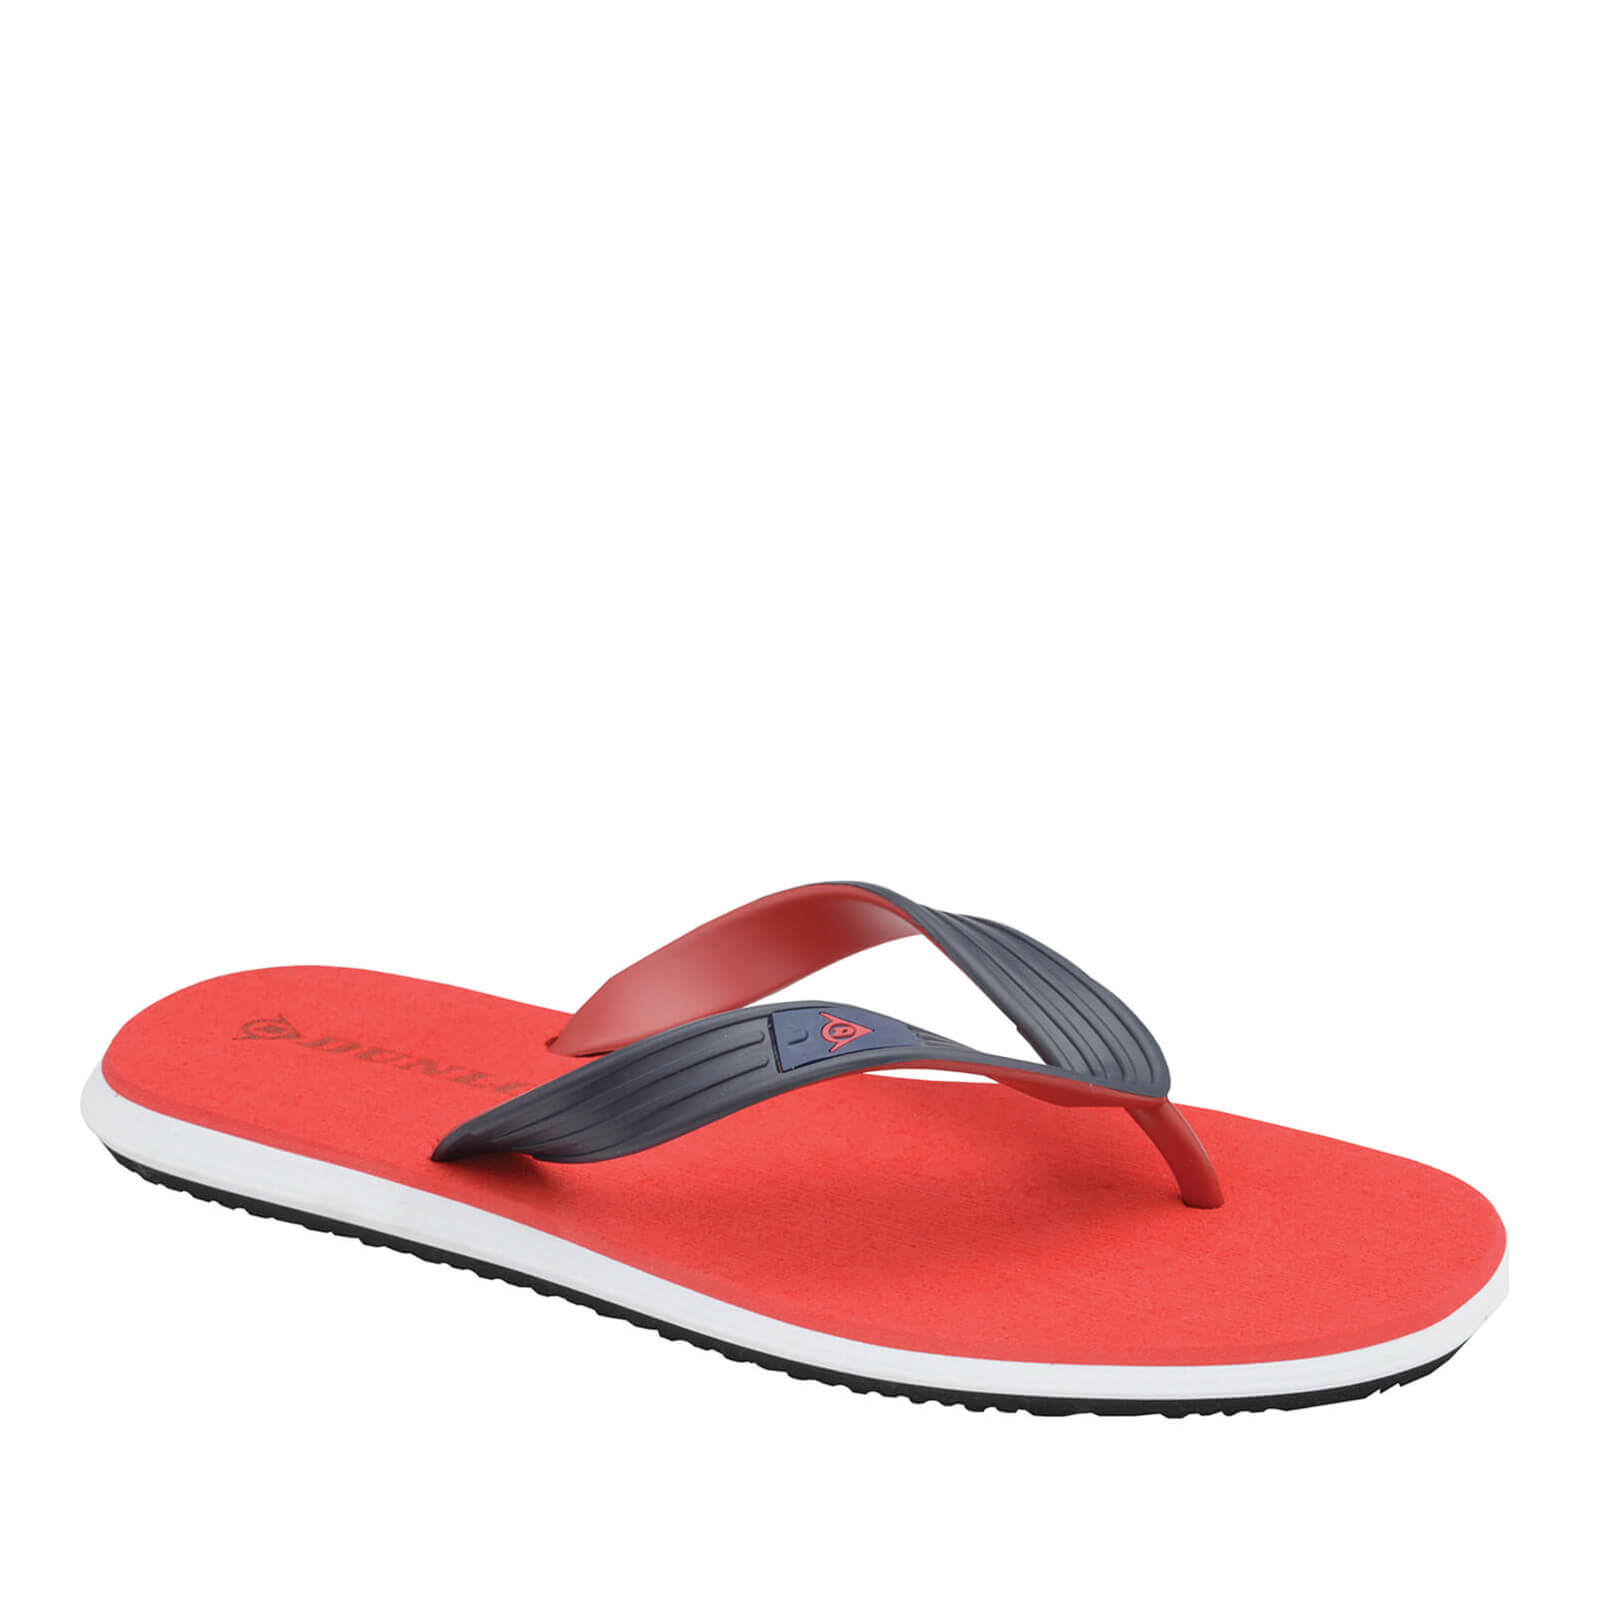 5ca51ea09e61 Dunlop Men s Toe Post Flip Flops - Red Mens Footwear